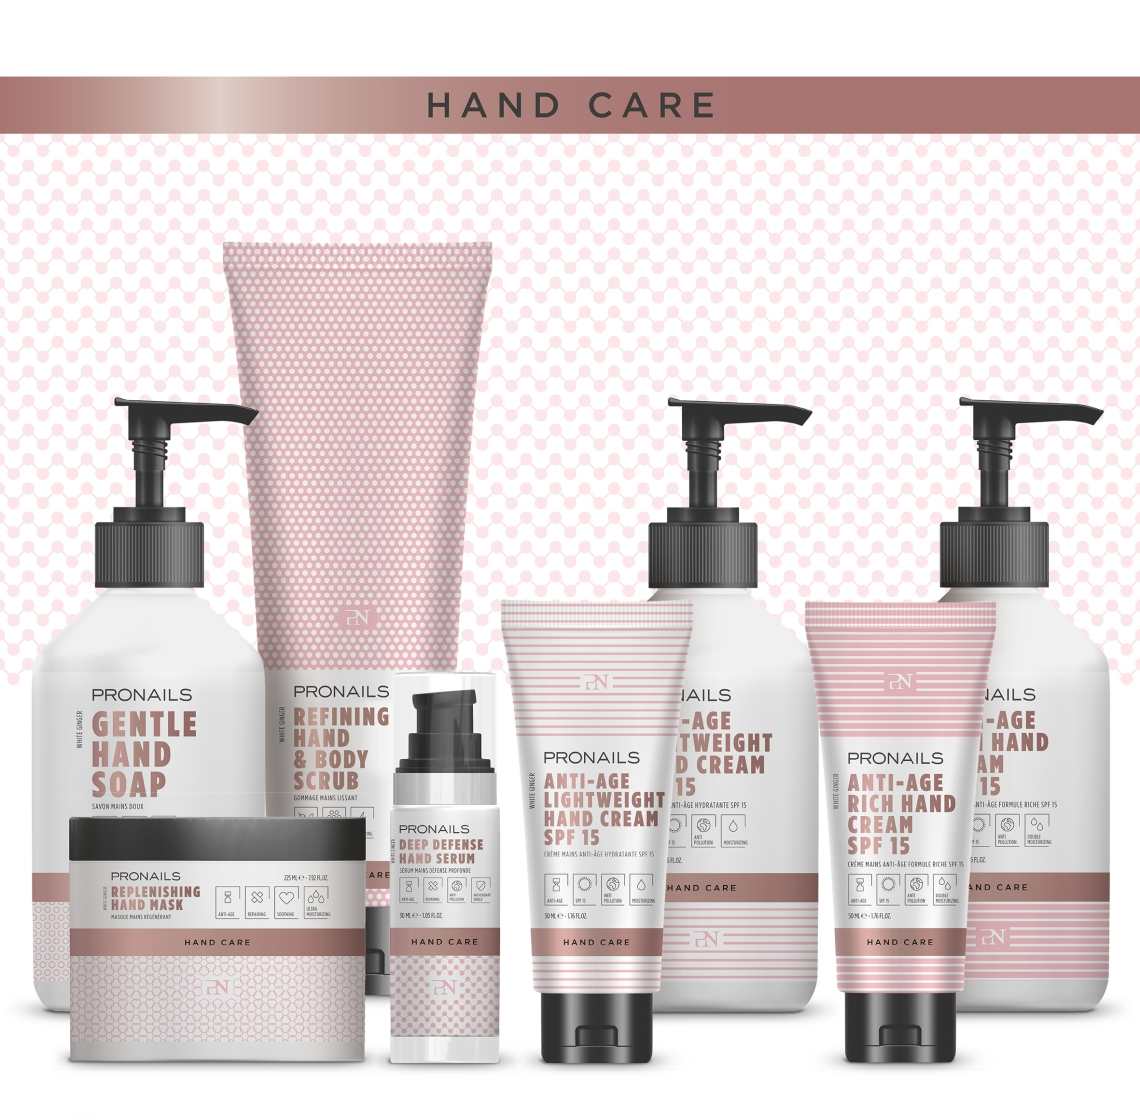 handcare_products